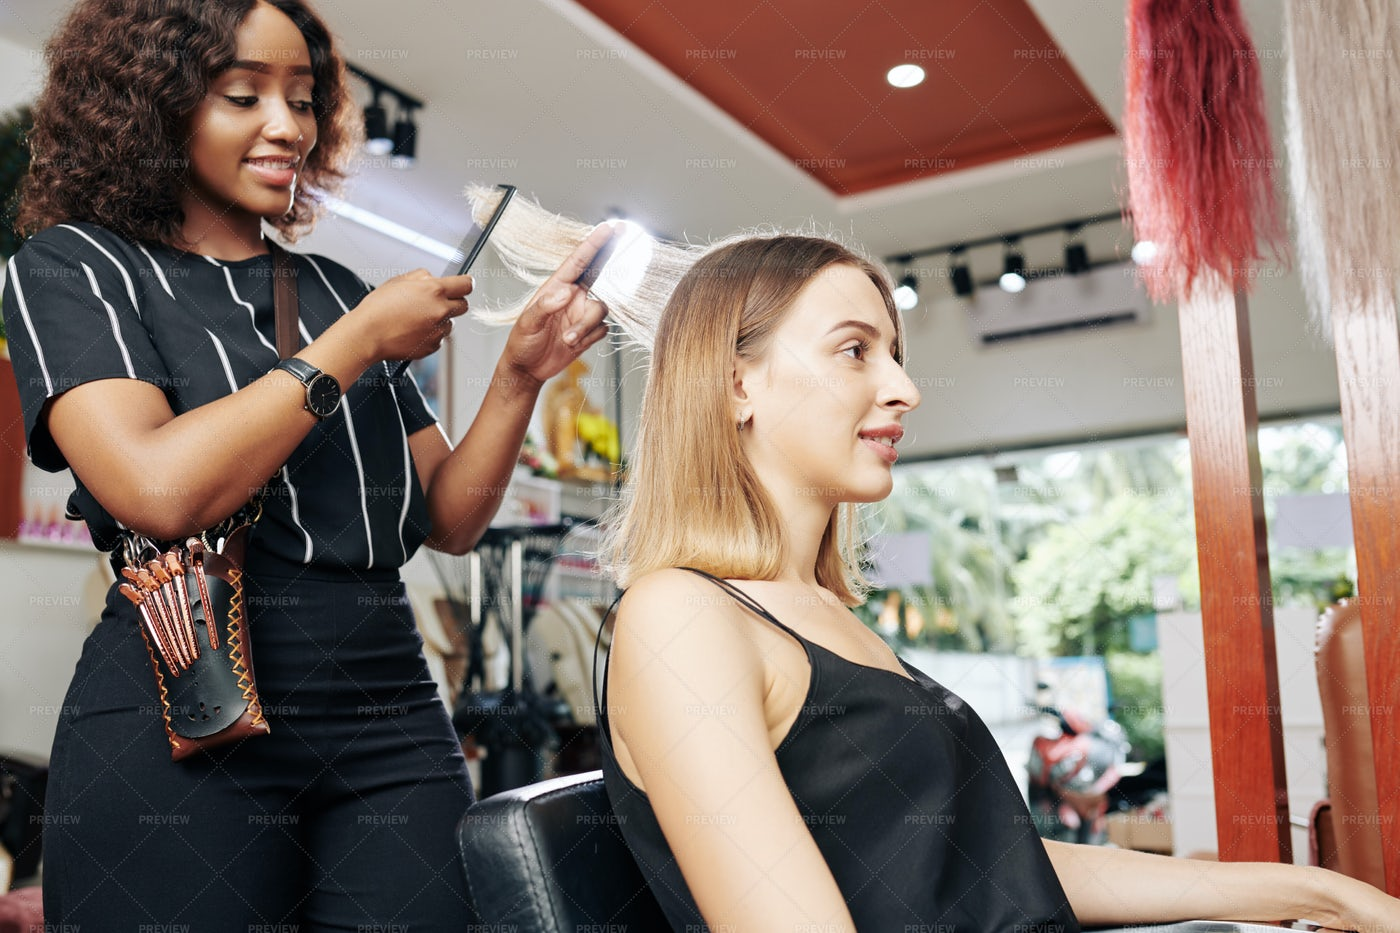 Young Woman Having Her Hair Done: Stock Photos